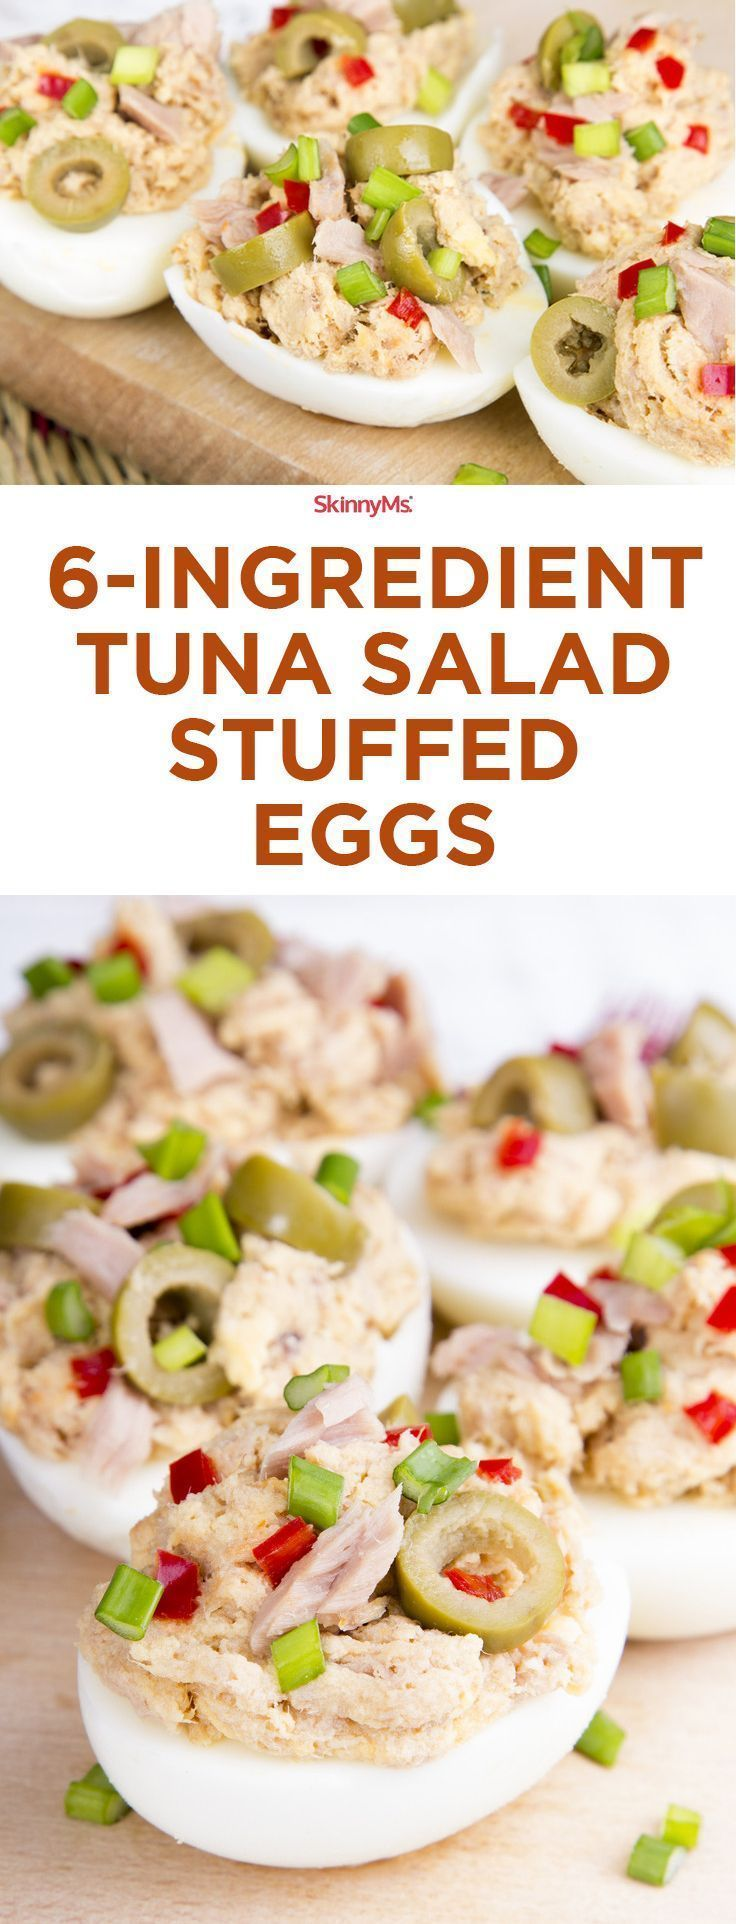 6-Ingredient Tuna Salad Stuffed Eggs - you've never had tuna salad like this before! #skinnyms